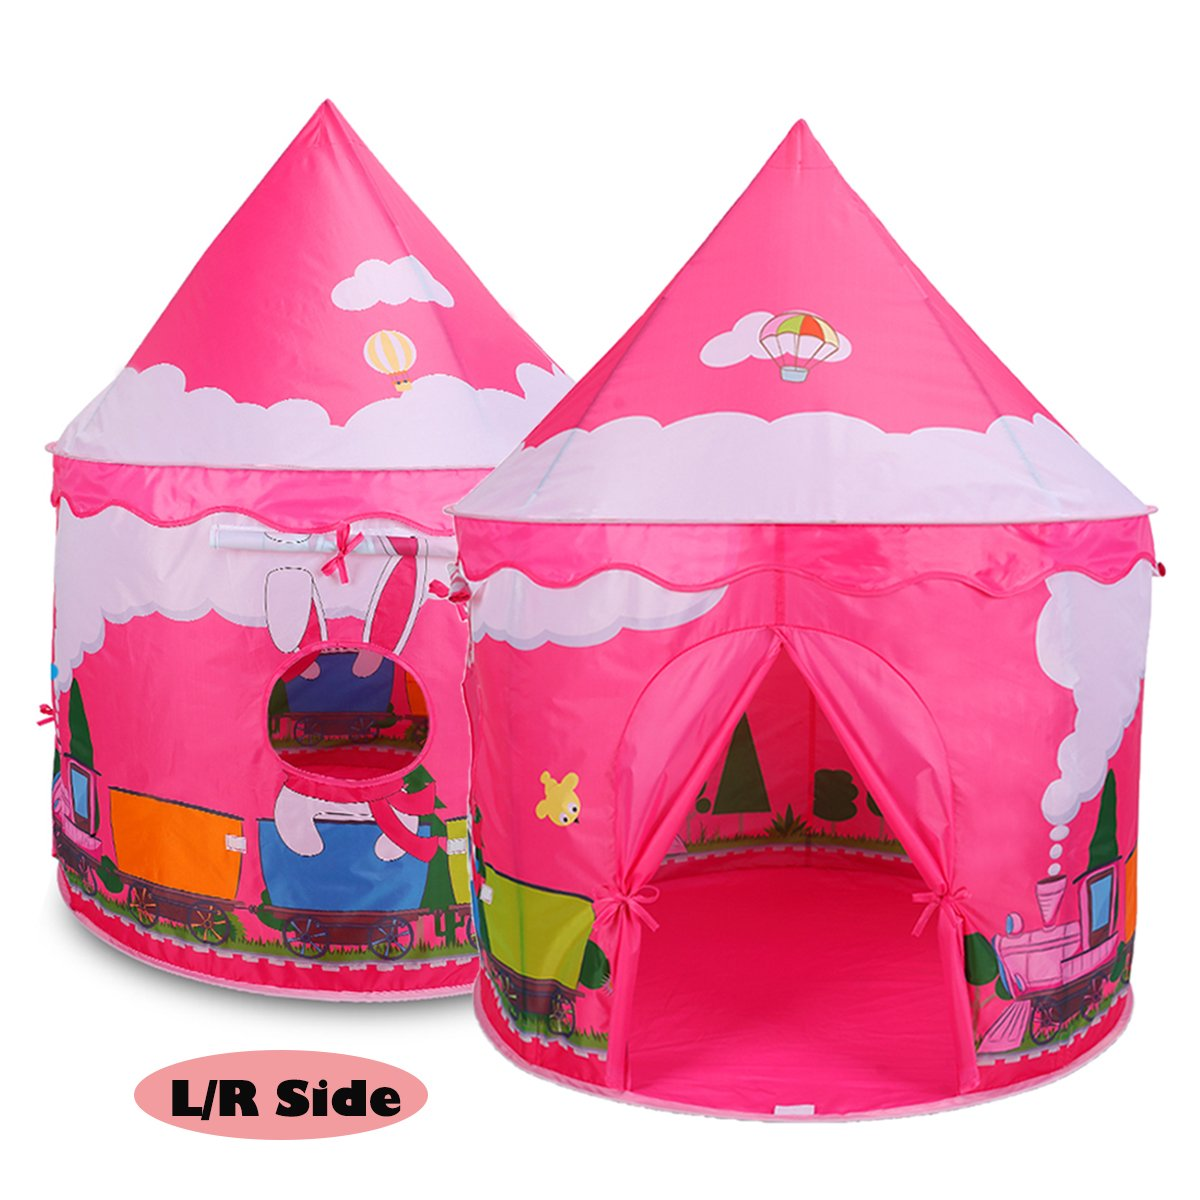 Eggsnow Girls Tent Princess Castle Play Tent Kids Play Tents for Girls Indoor and Outdoor Fun Play-Pink Topbestsource FBA-WZZP-CB-Pink